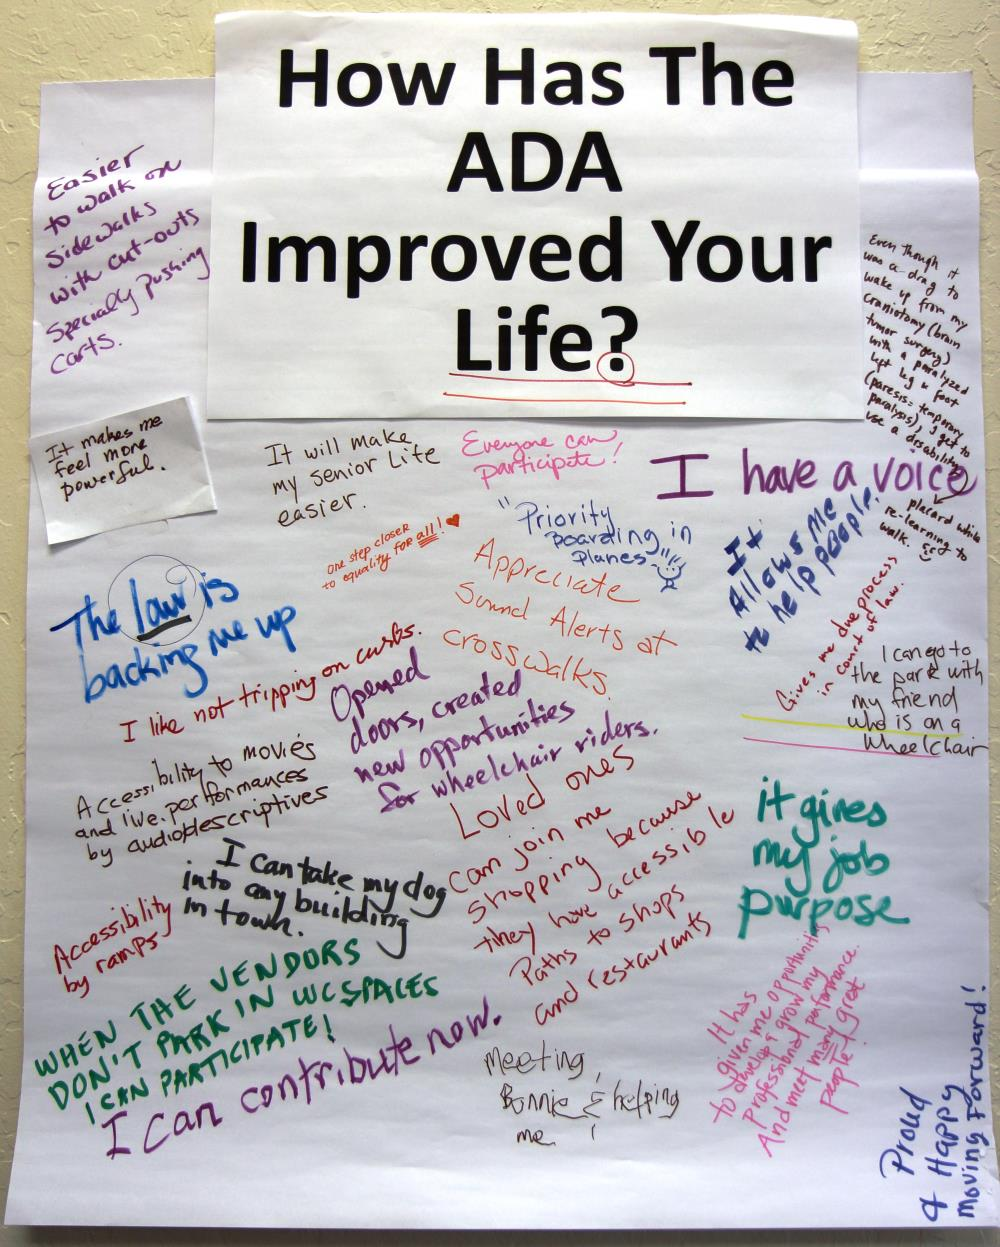 How Has the ADA Improved Your Life Poster